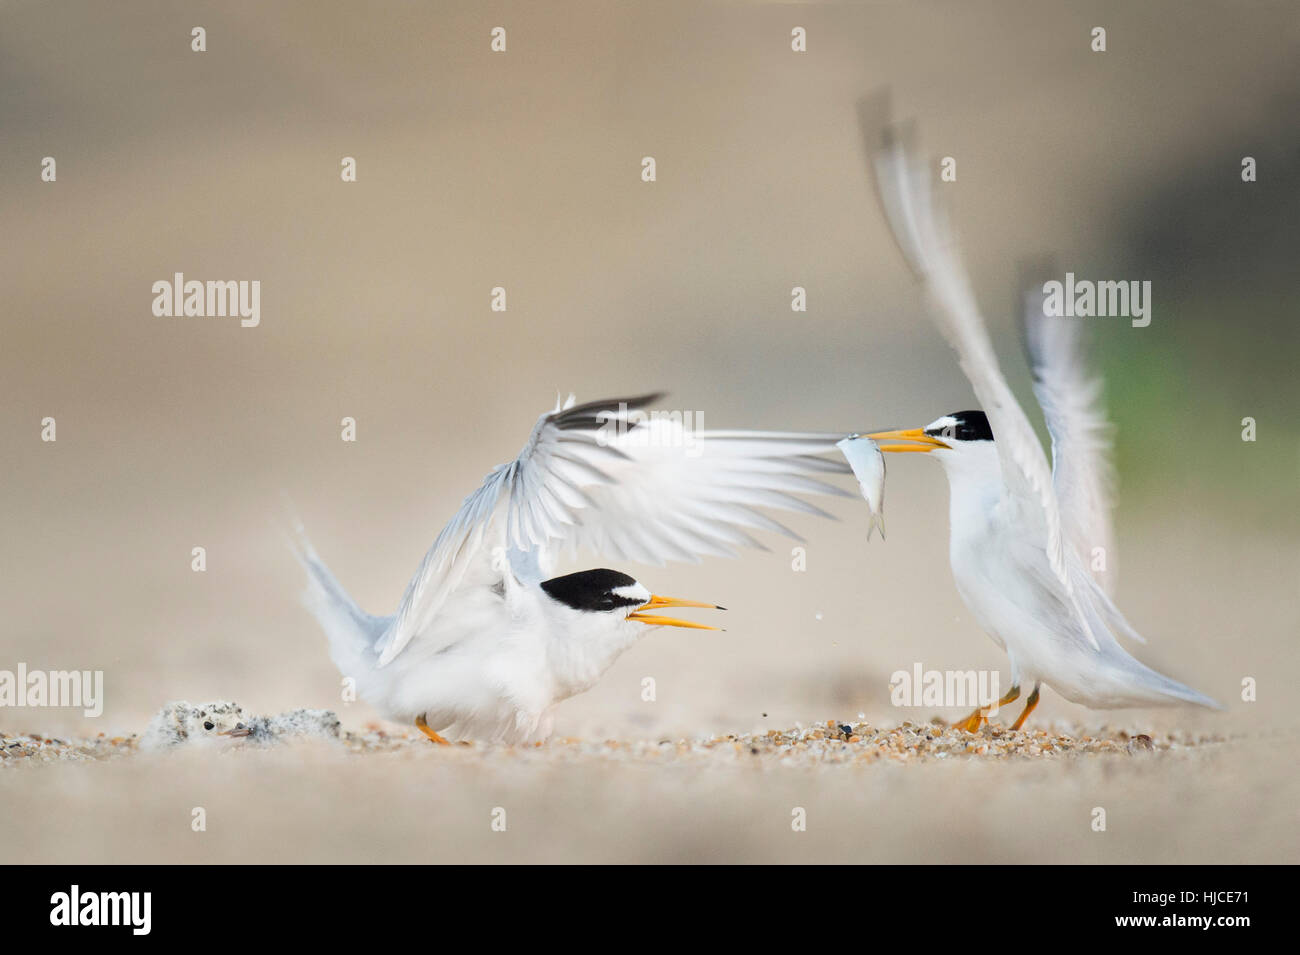 A pair of adult Least Terns flap their wings at each other while one of them holds a fish and the other bird protects - Stock Image